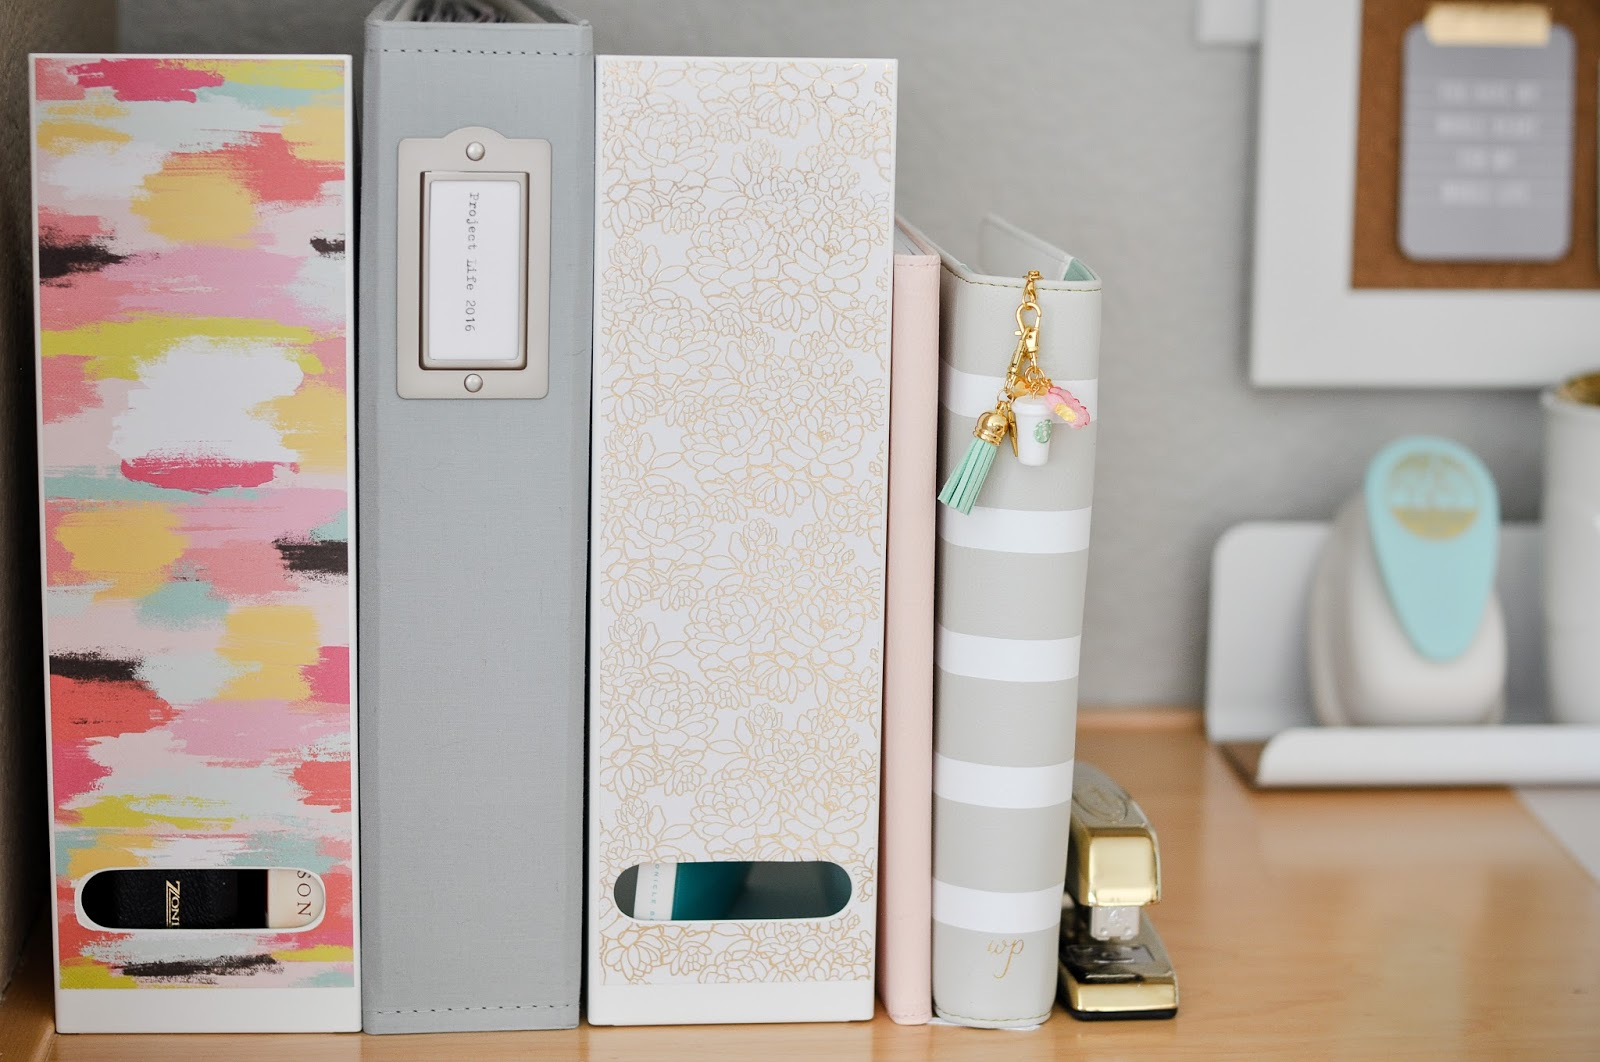 Artful leigh project life and ikea how to organize and - Desk organize ...